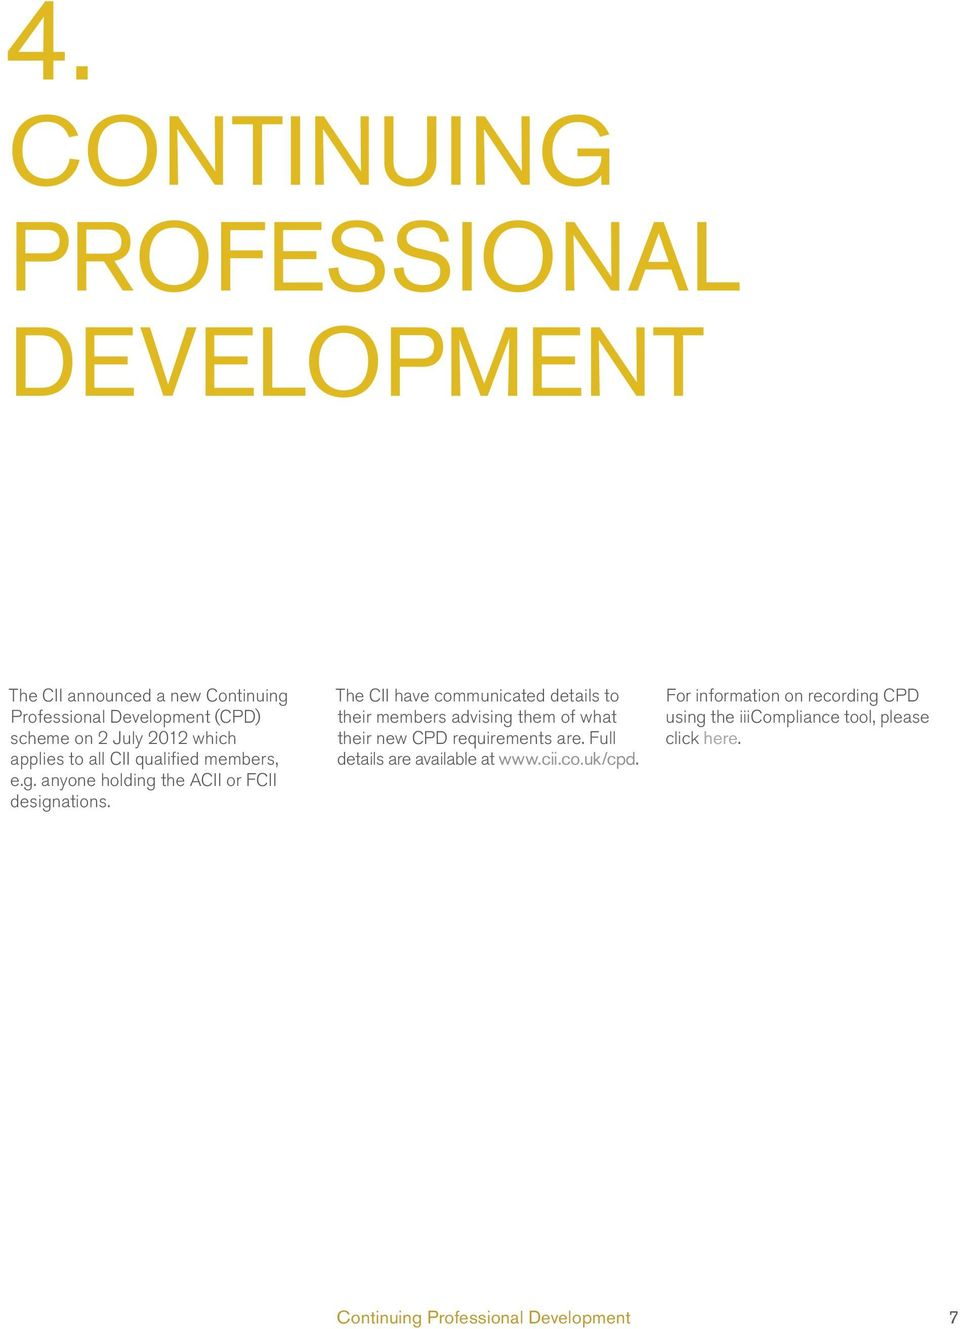 The CII have communicated details to their members advising them of what their new CPD requirements are.